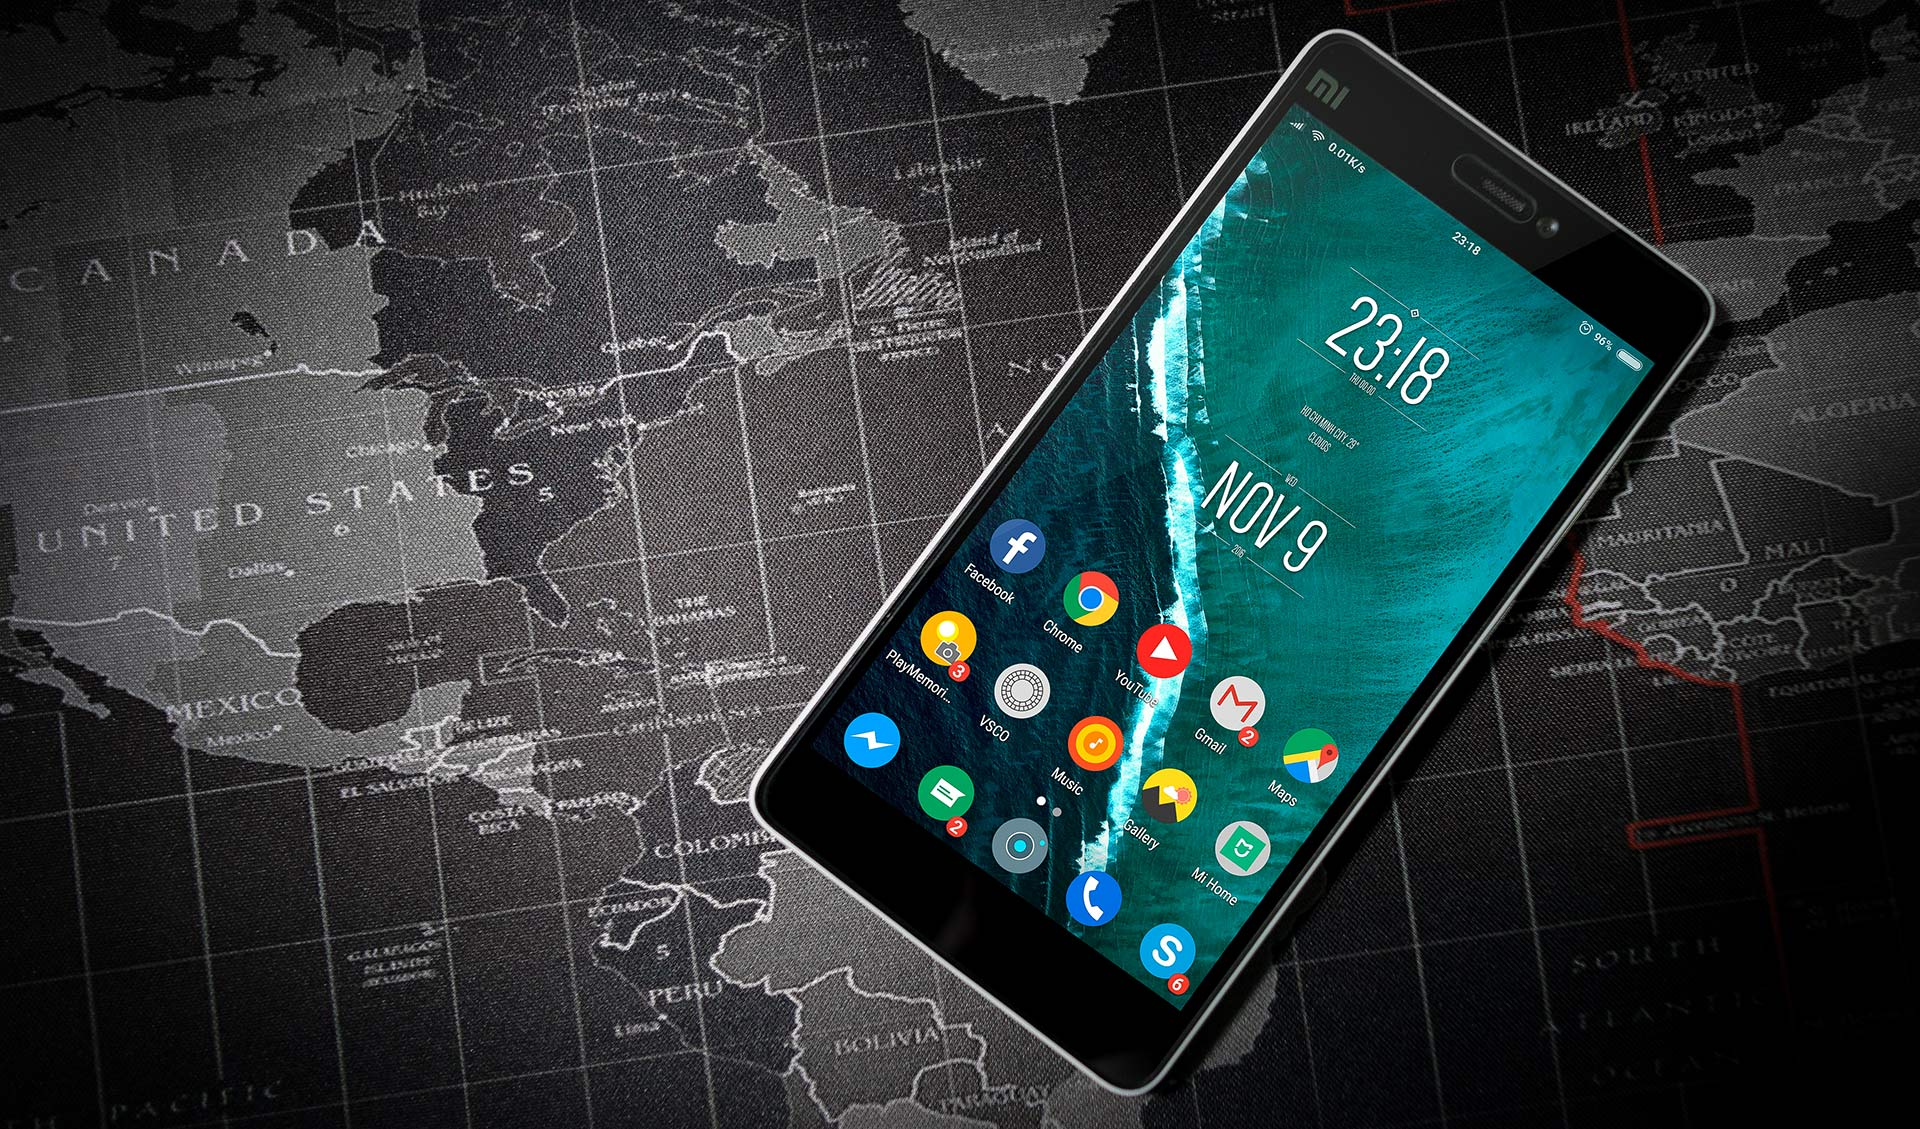 World map smartphone mobile inqbarna apps barcelona inqbarna world map with smartphone gumiabroncs Image collections